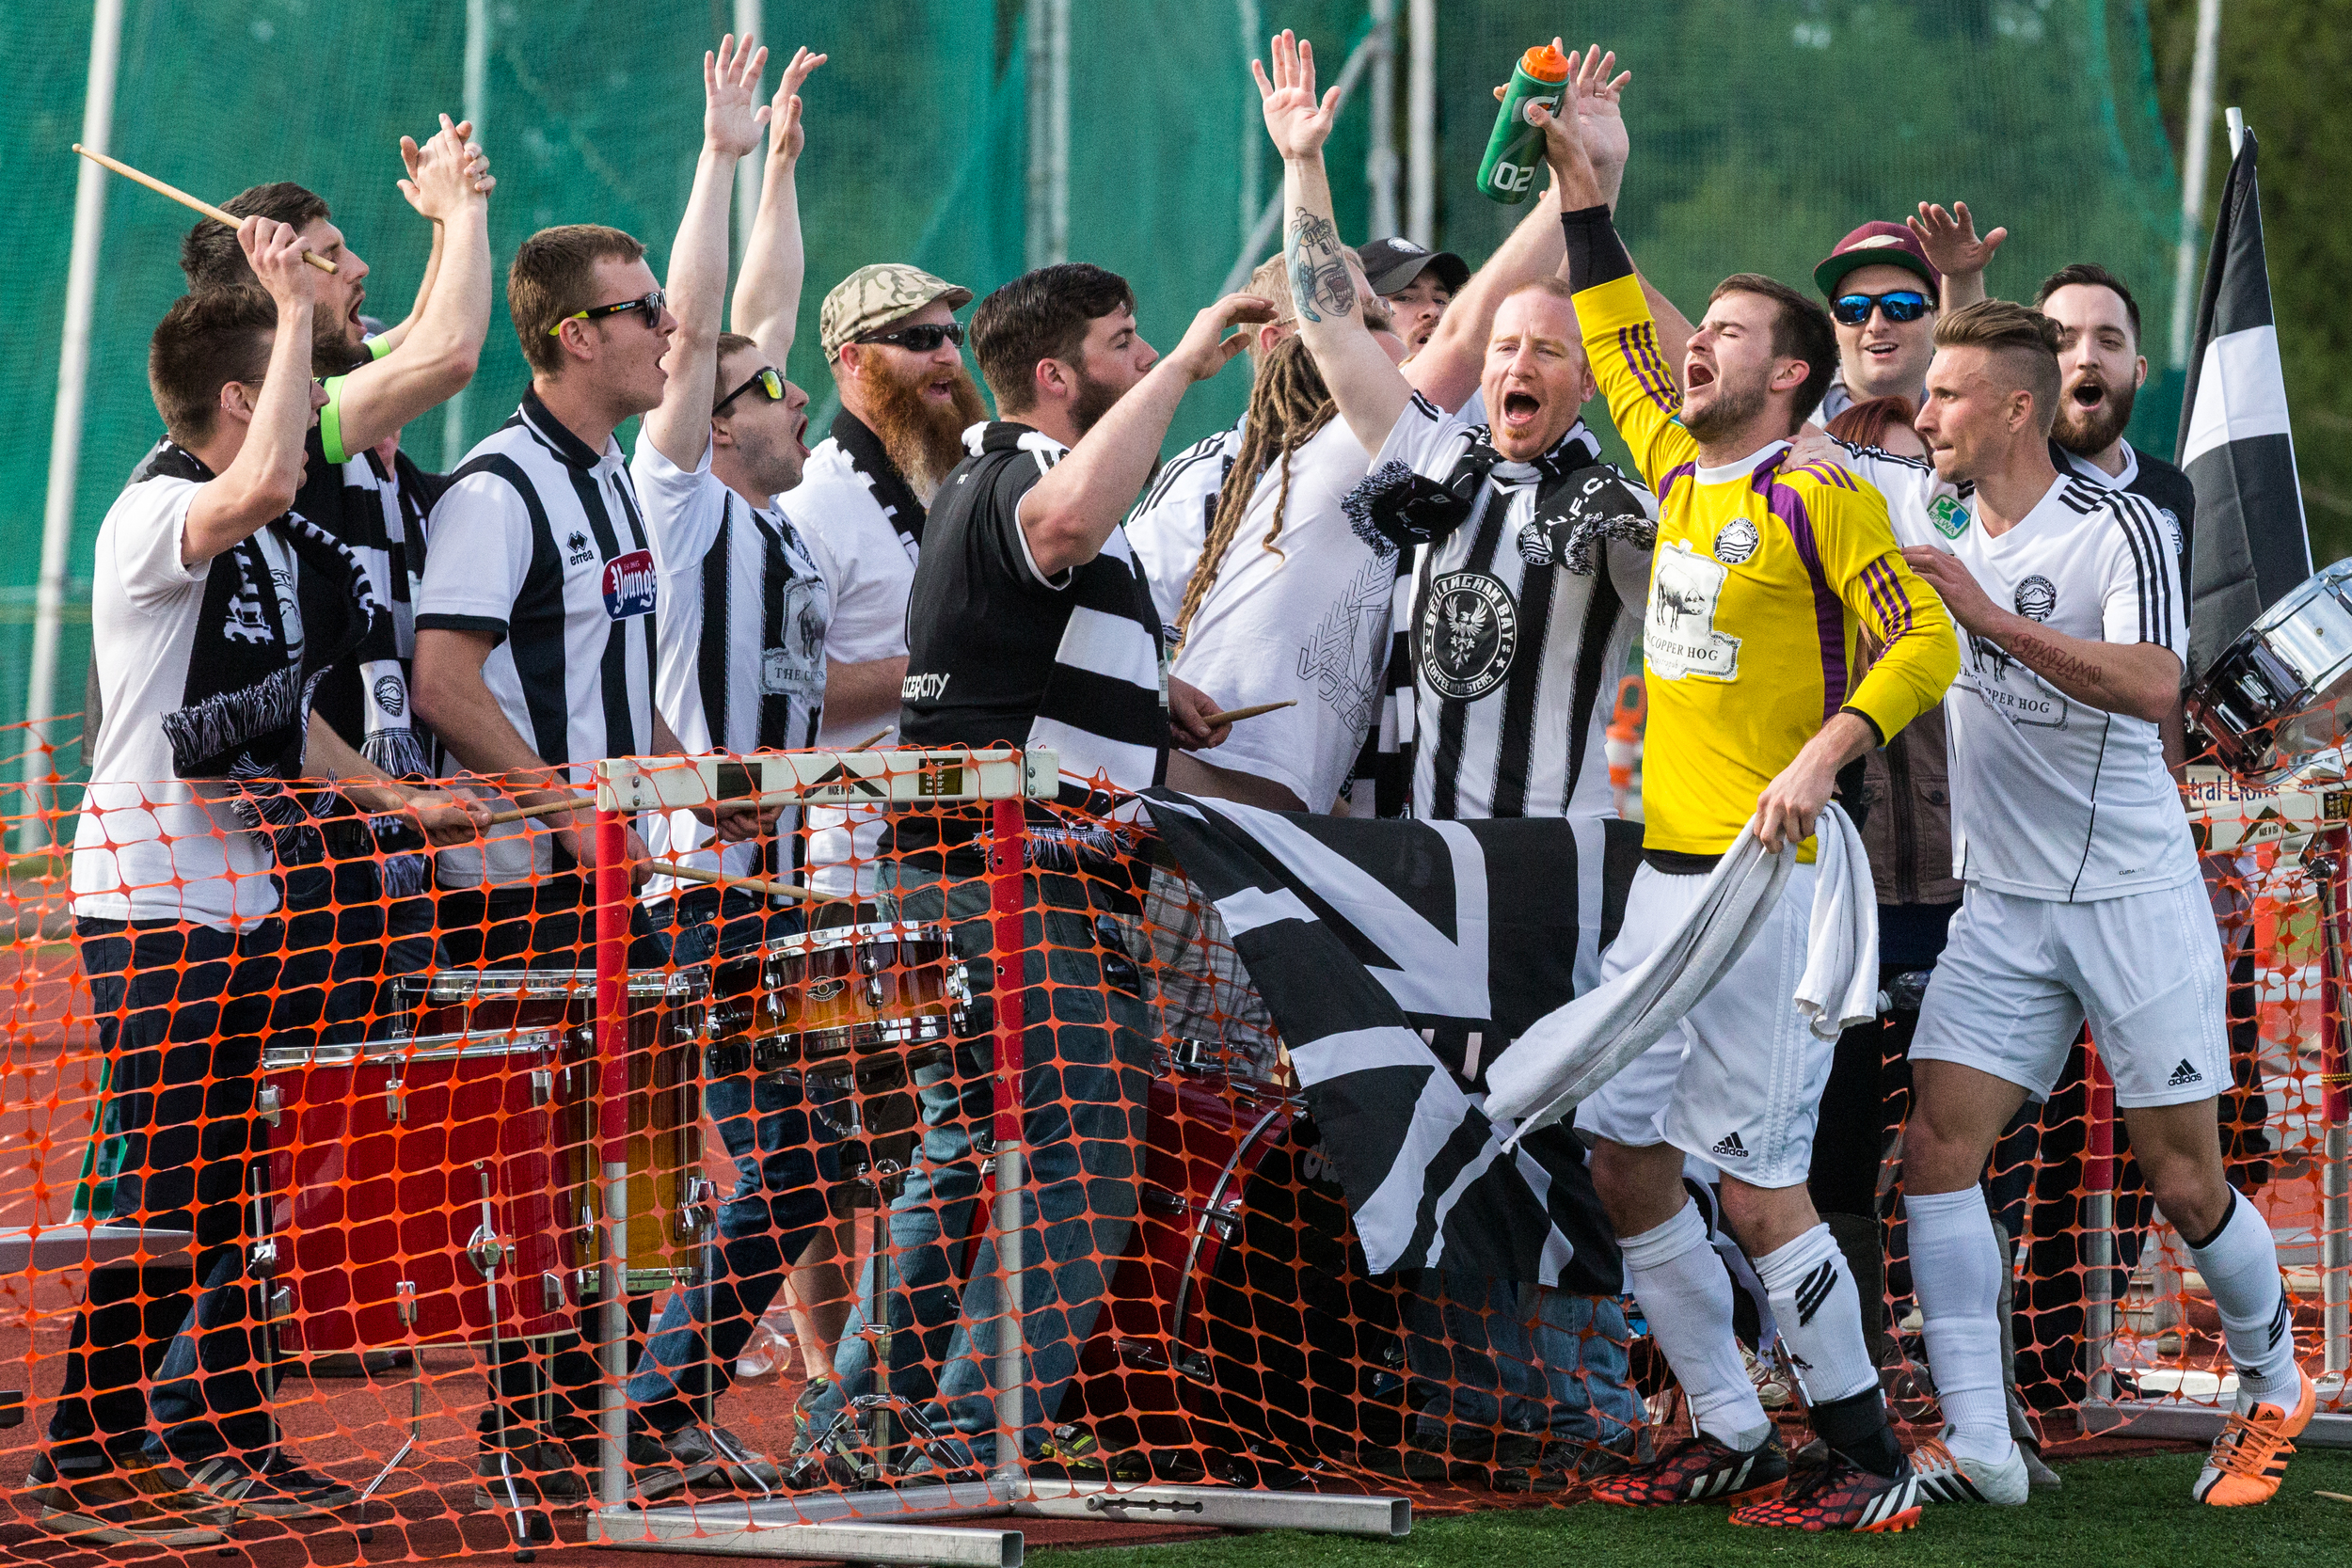 The Bellingham United supporters group, the Black and White Army, cheers with players despite a tough 5-1 loss against South Sound FC on Sunday, April 26, at Civic Field.